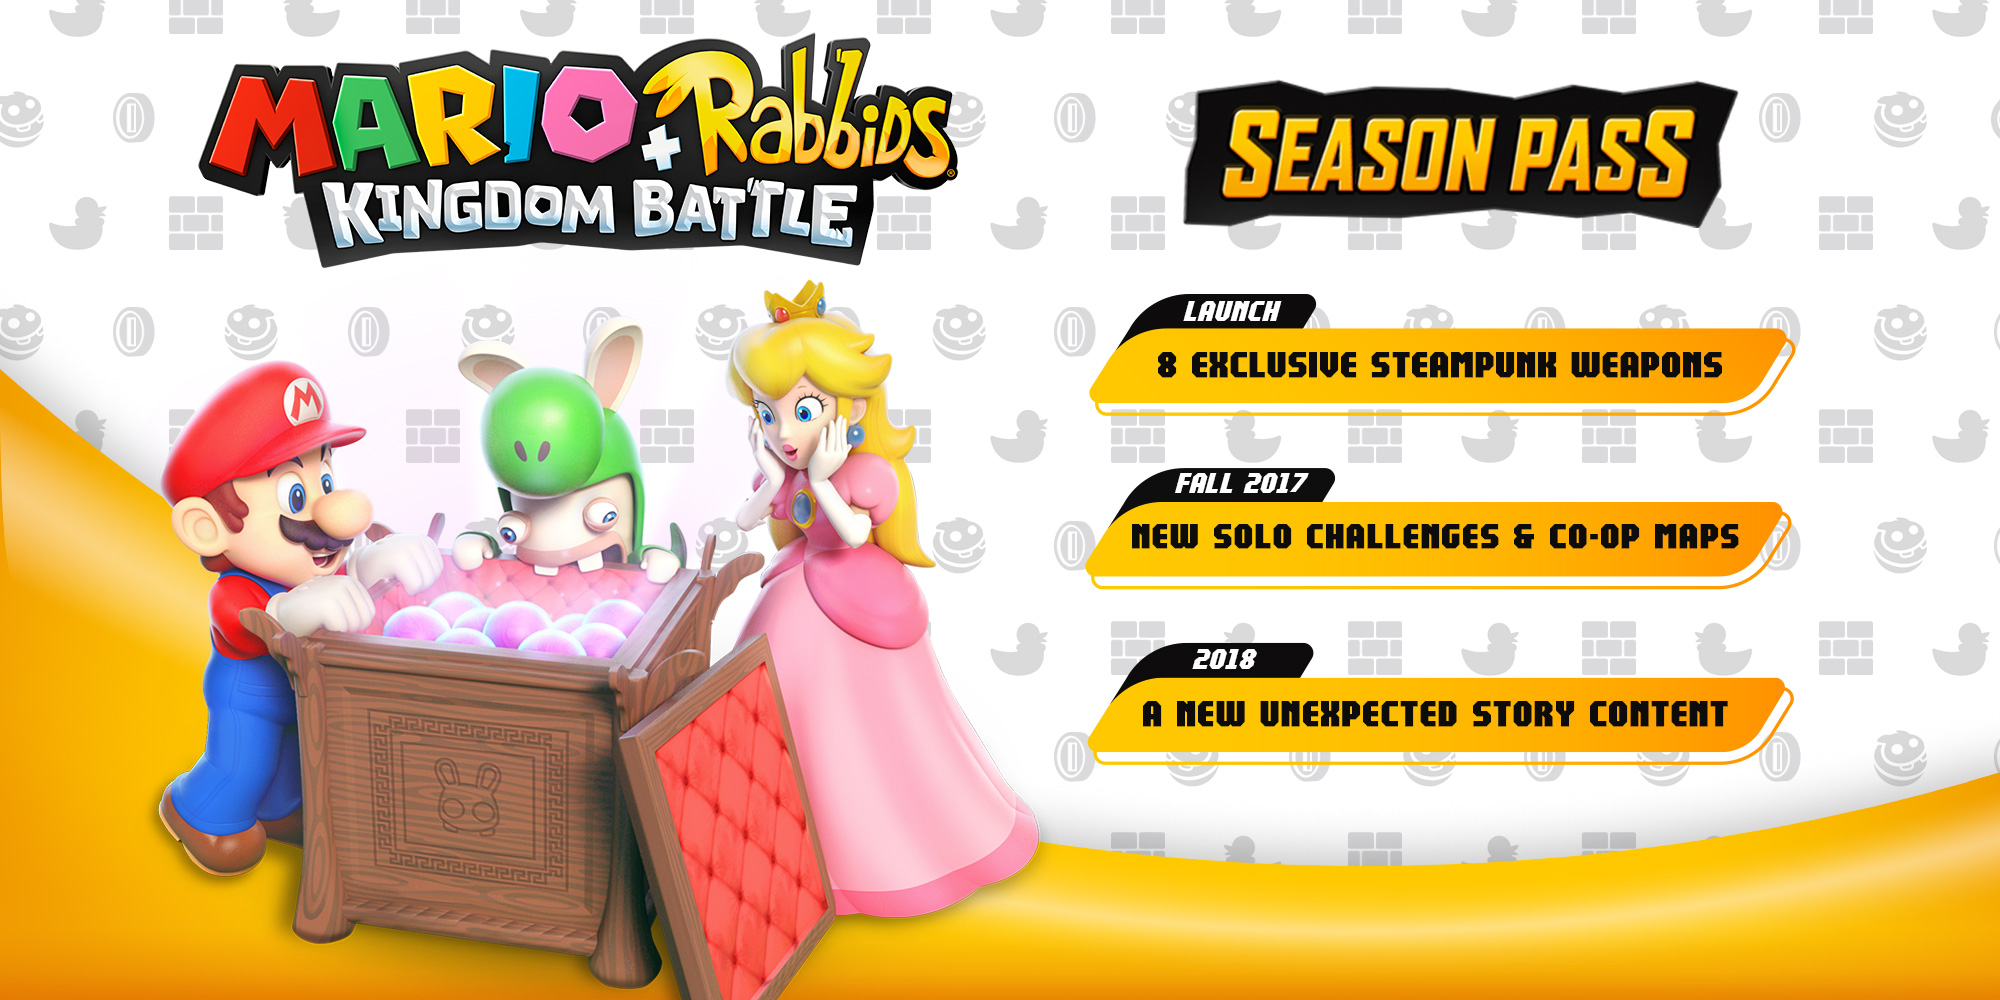 Mario + Rabbids: Kingdom Battle Has A Season Pass